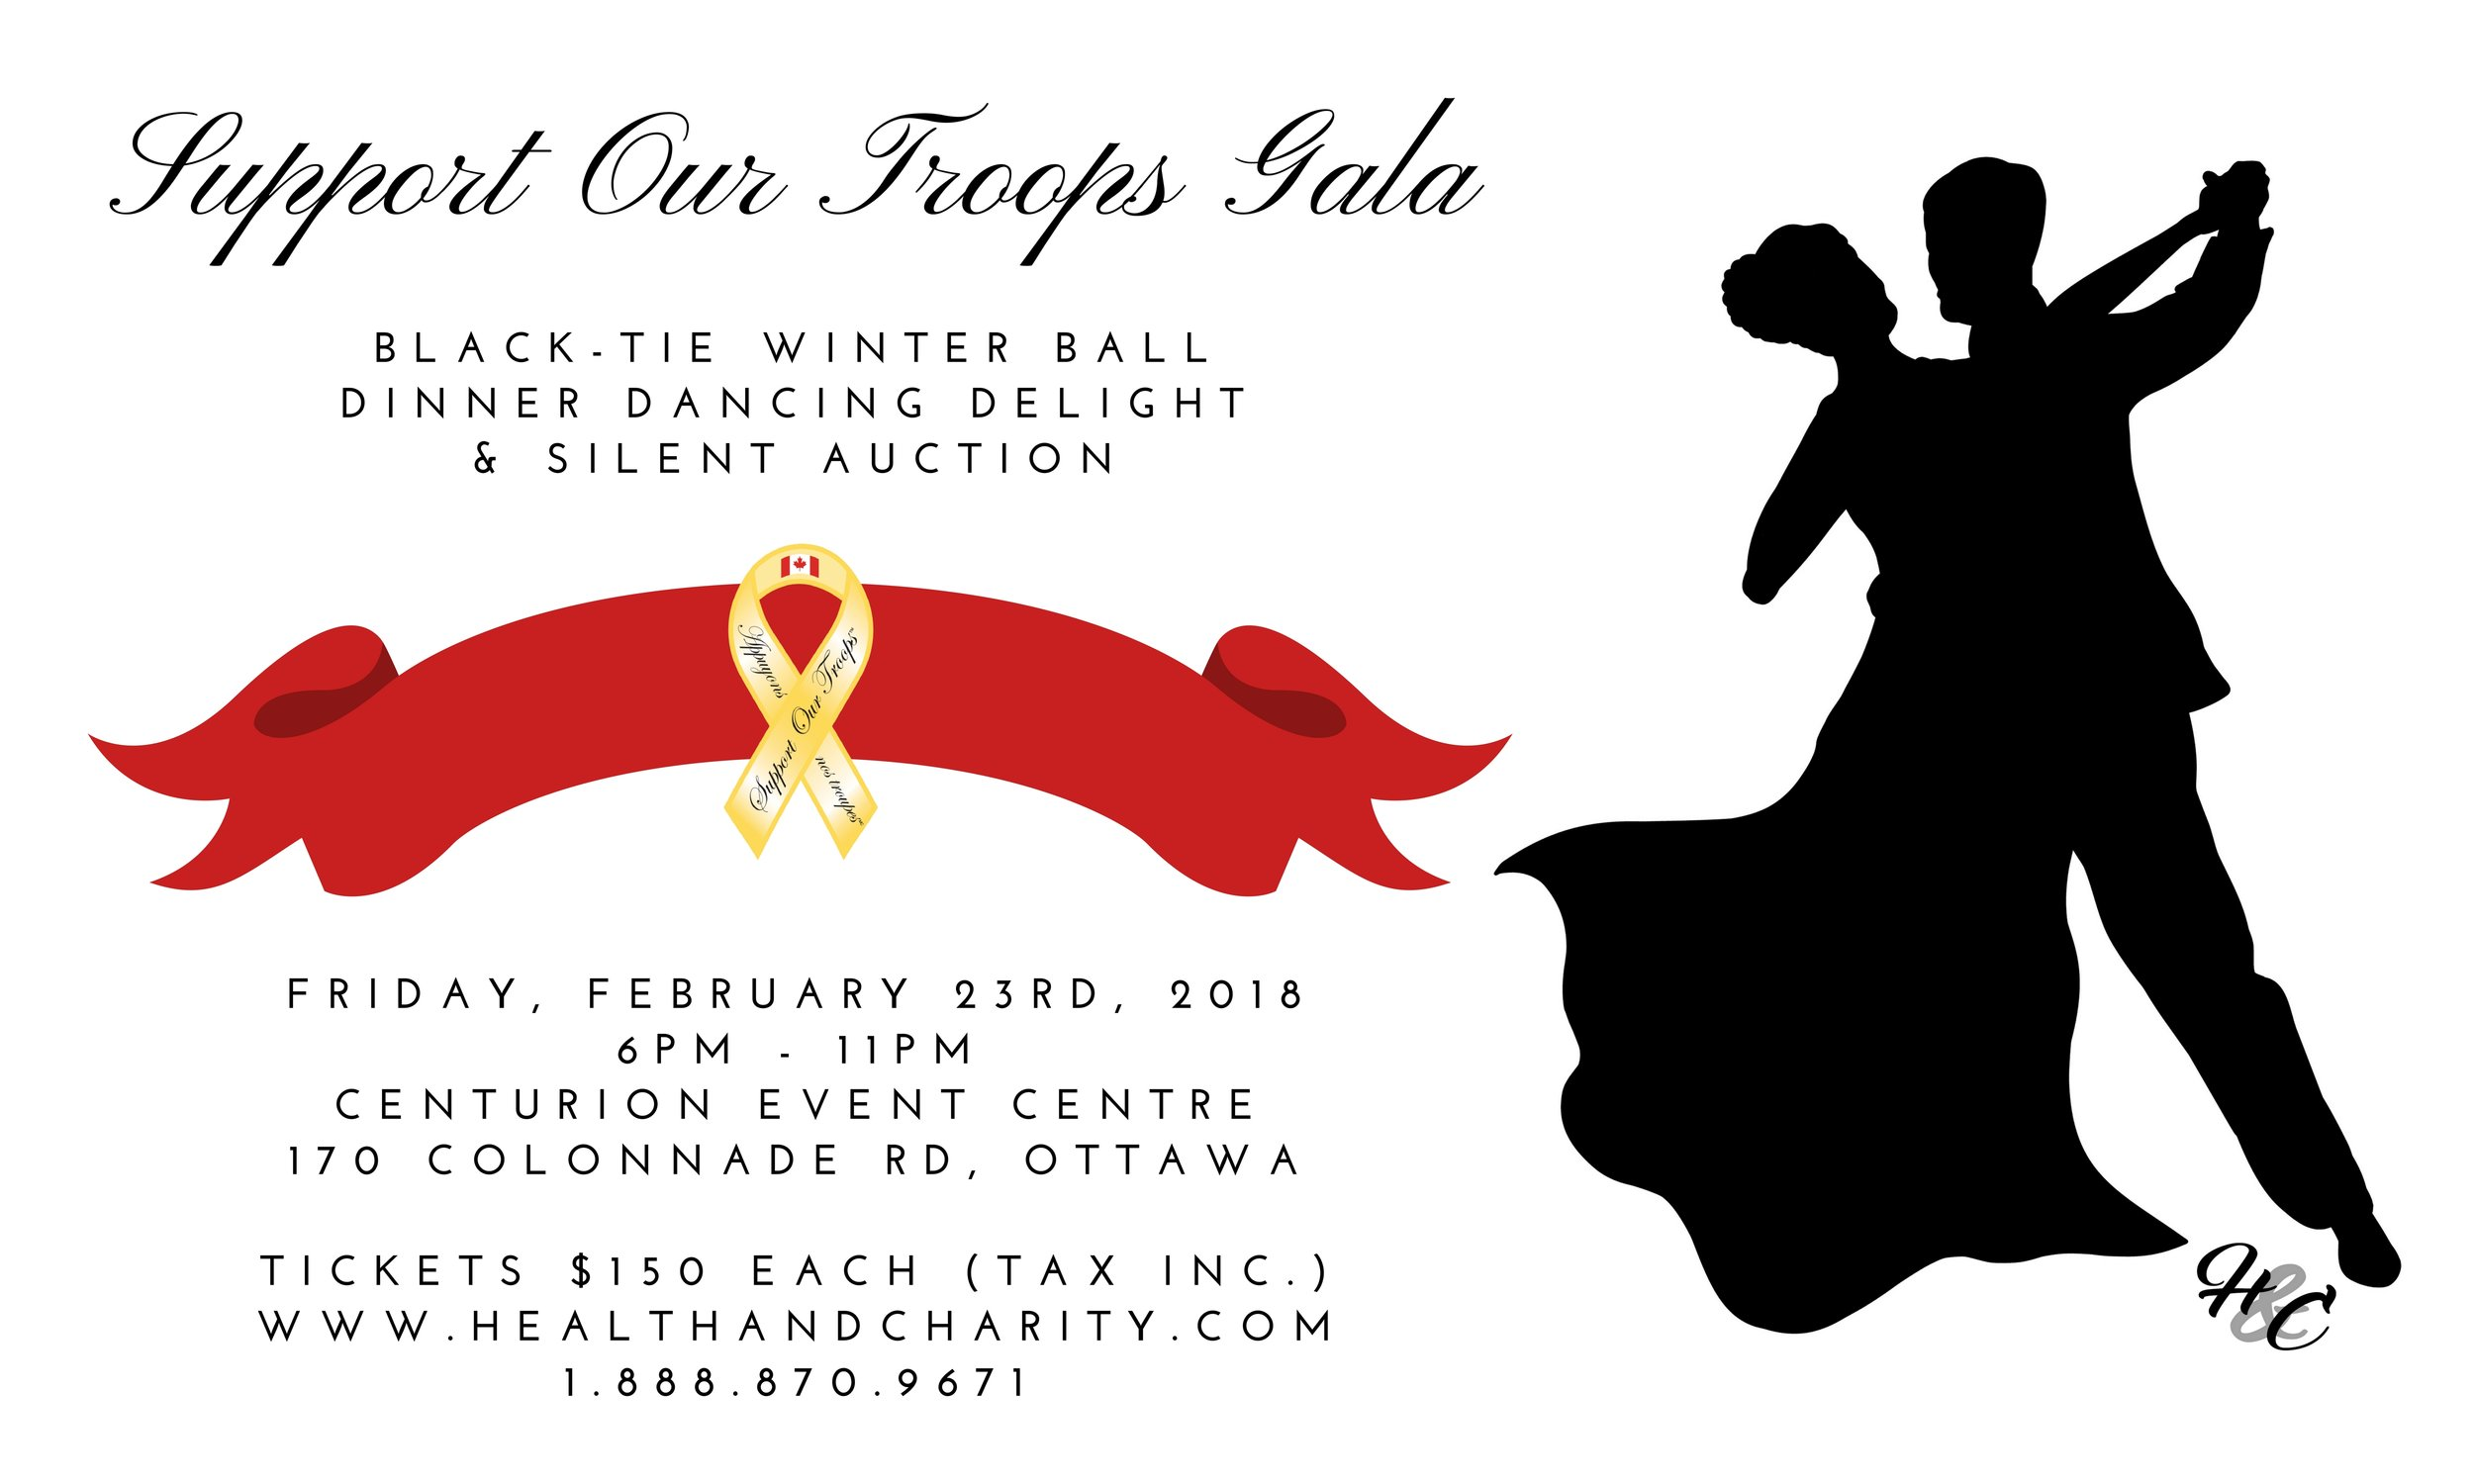 Support Our Troops Gala 2018   On Friday, February 23rd, 2018 we danced the night away to support our troops. Provided an amazing 3-course meal, excellent silent auction and fantastic entertainment. We would like to thank everyone who attended and a special thank you to our supporting sponsors.